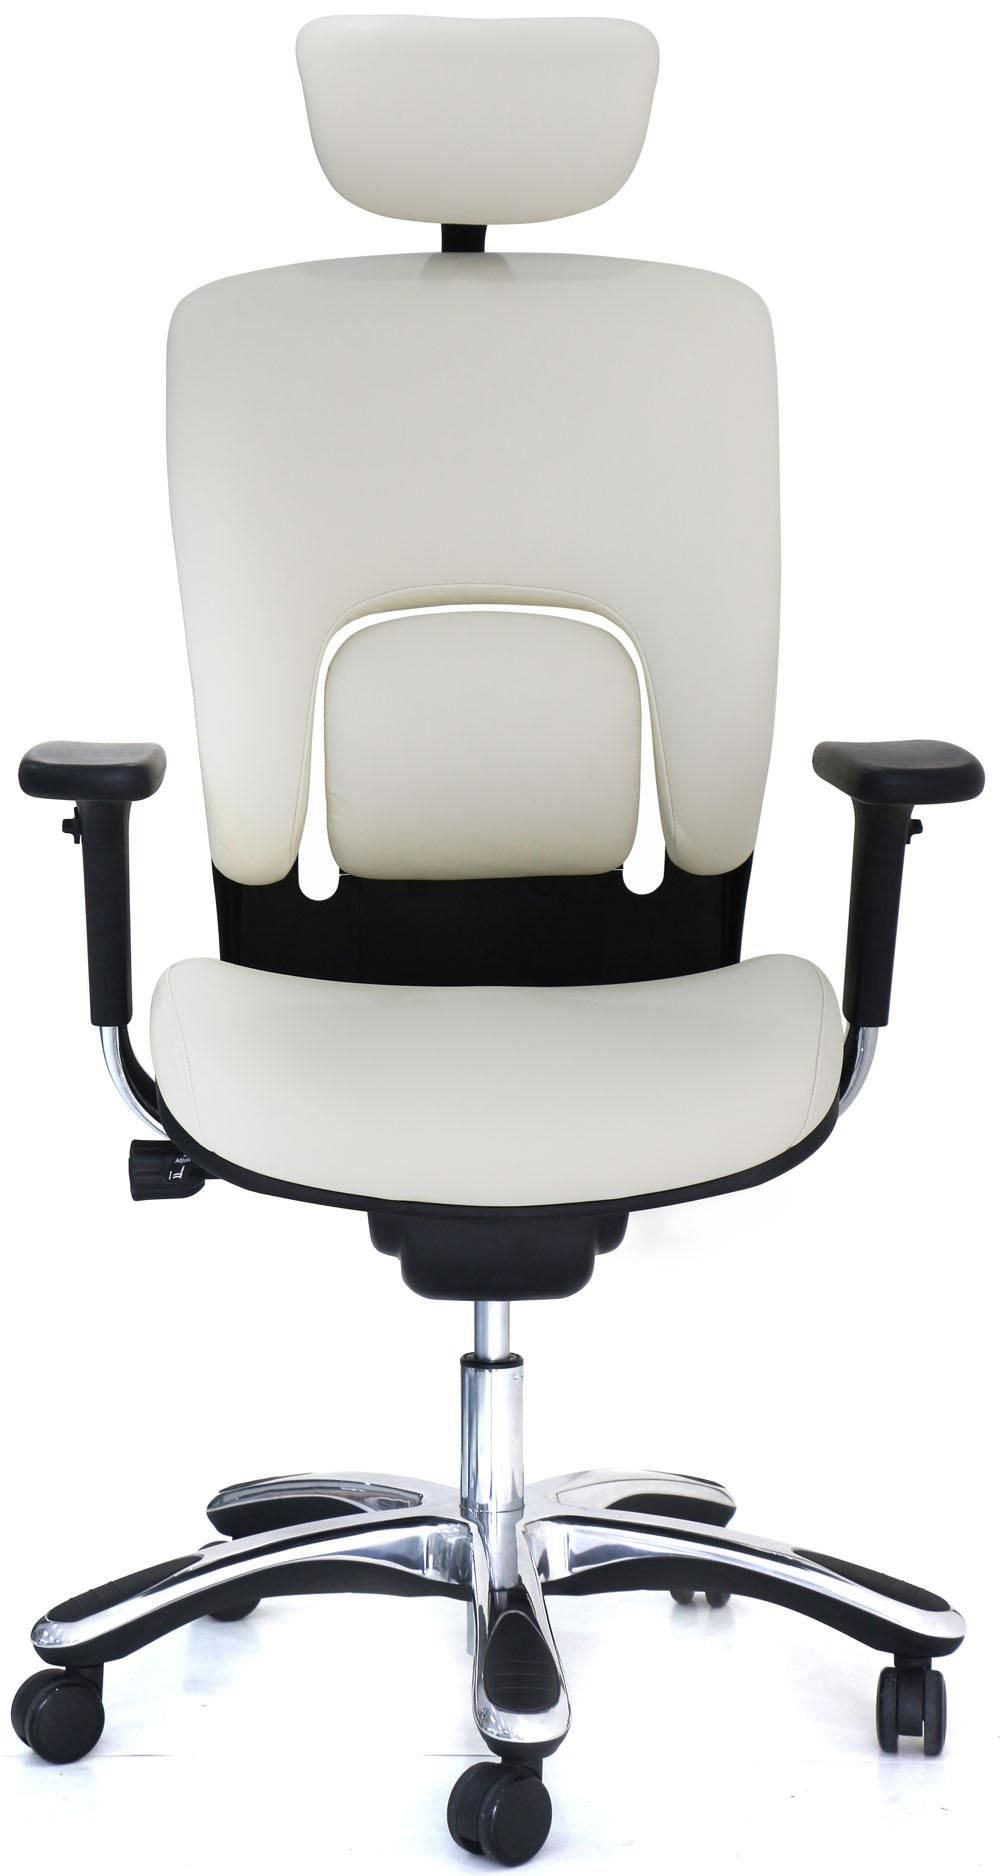 office chair genuine leather white. White Ergolux Genuine Leather High-Back Executive Office Chair Front View N